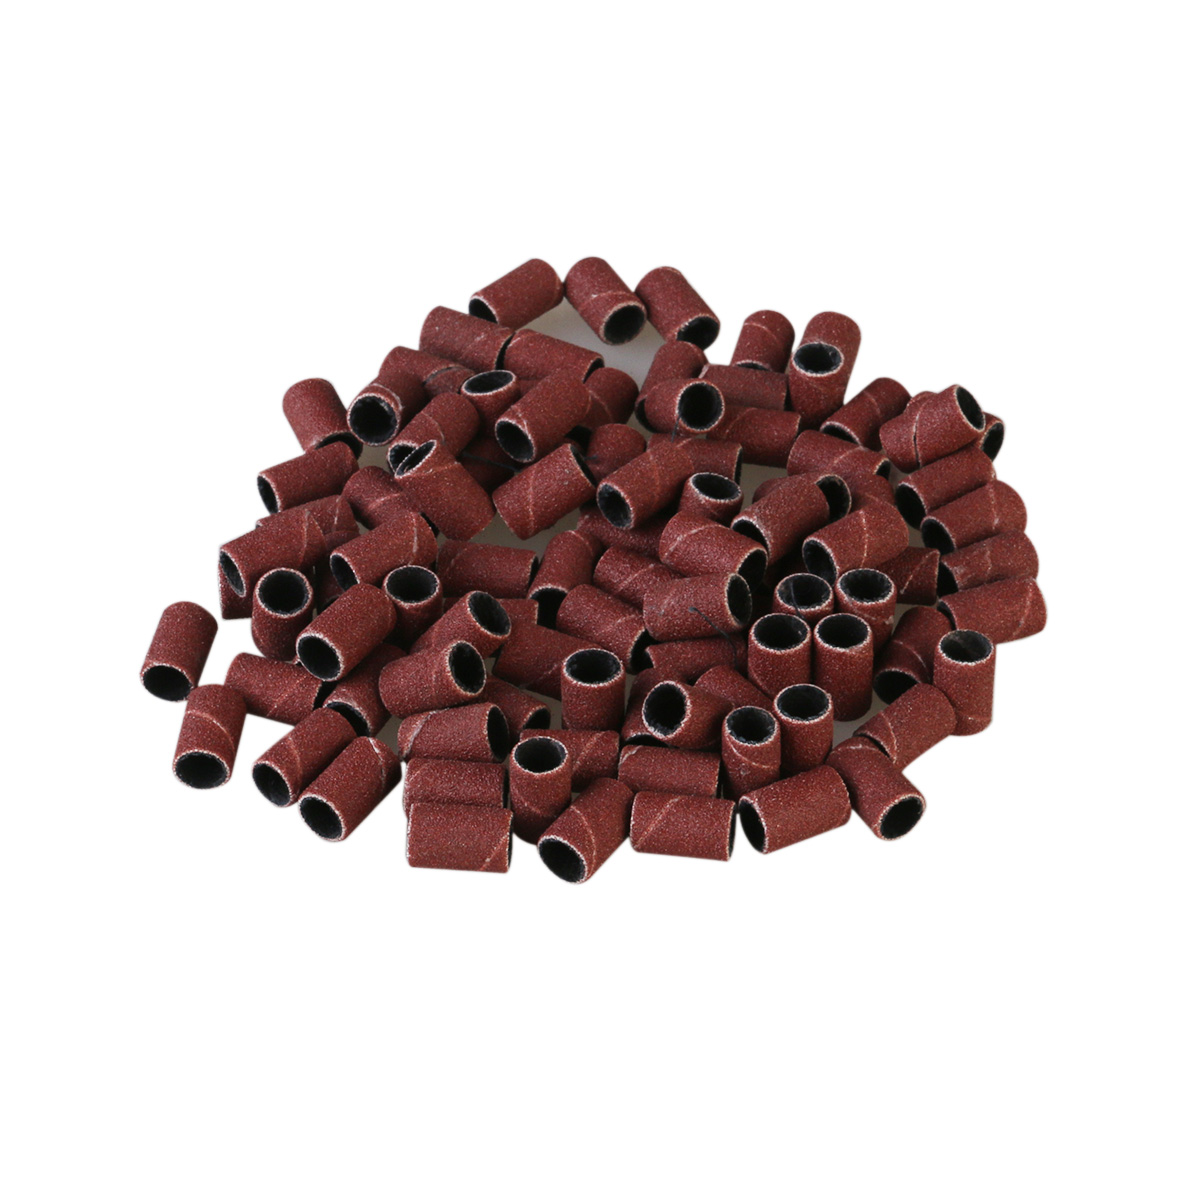 100pcs Mounted Cylindrical Grinding Heads Abrasive Sleeves Sanding Bands For Nail Drill Manicure Tools